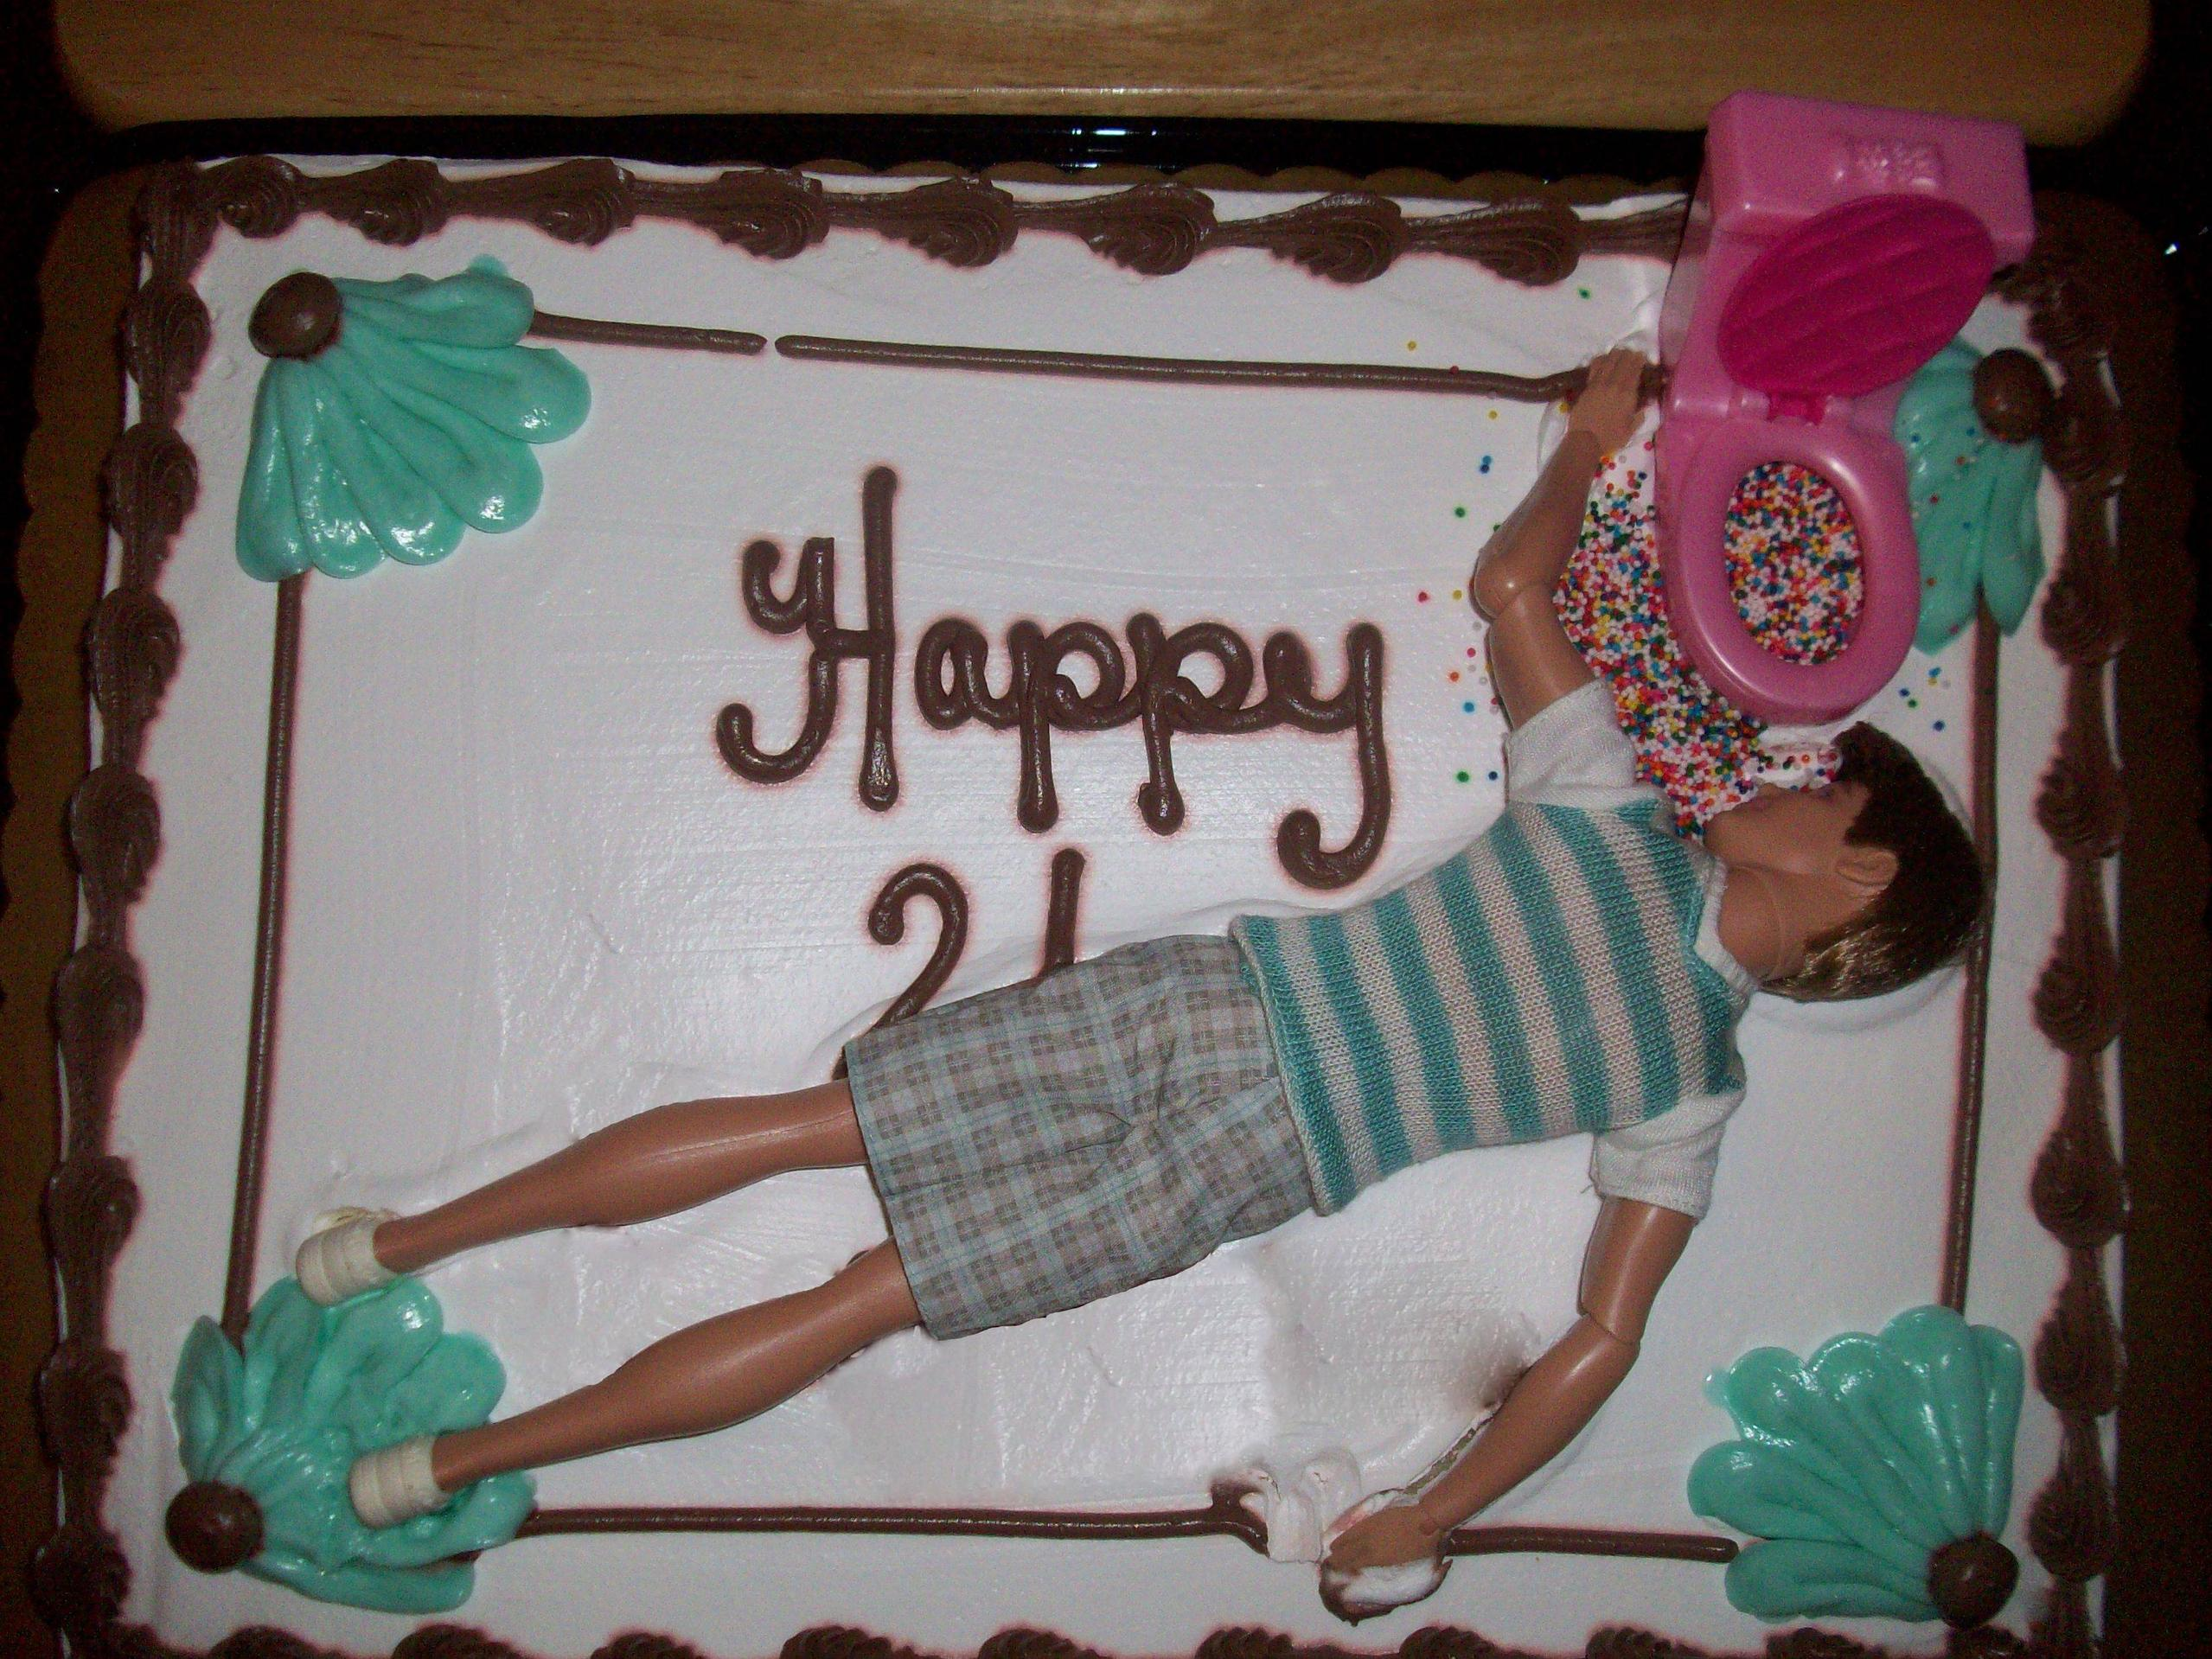 25 inspirational cake designs the poke 3 publicscrutiny Image collections